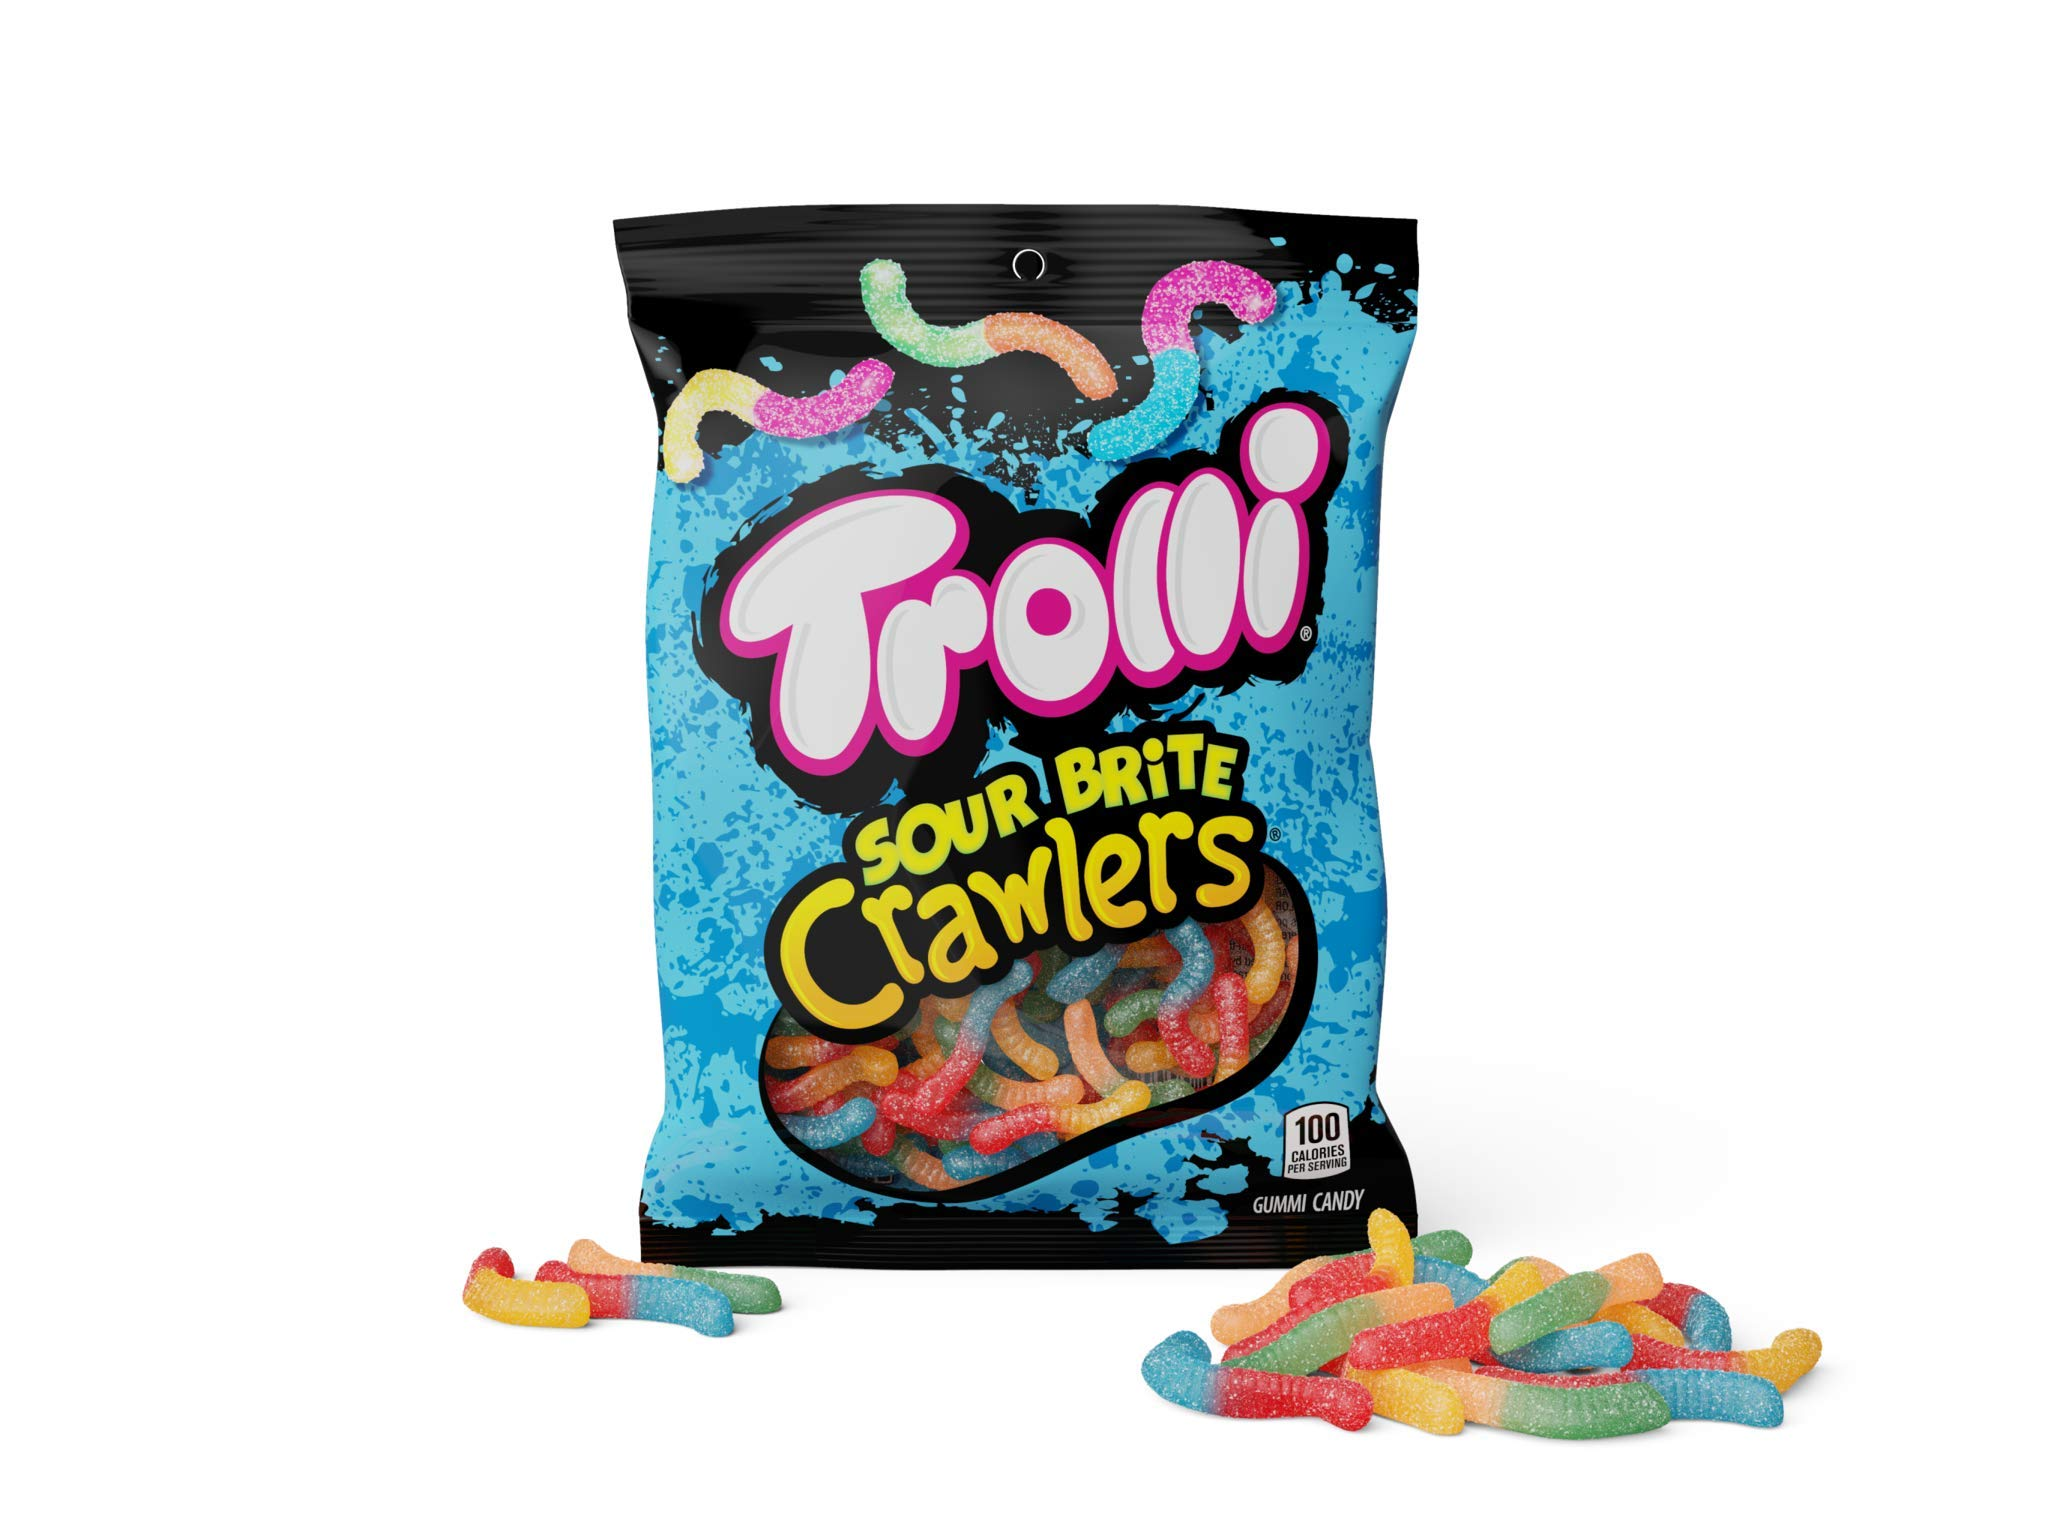 Trolli Sour Brite Crawlers Gummy Candy, 5 Ounce Bag, Pack of 12 by Trolli (Image #6)